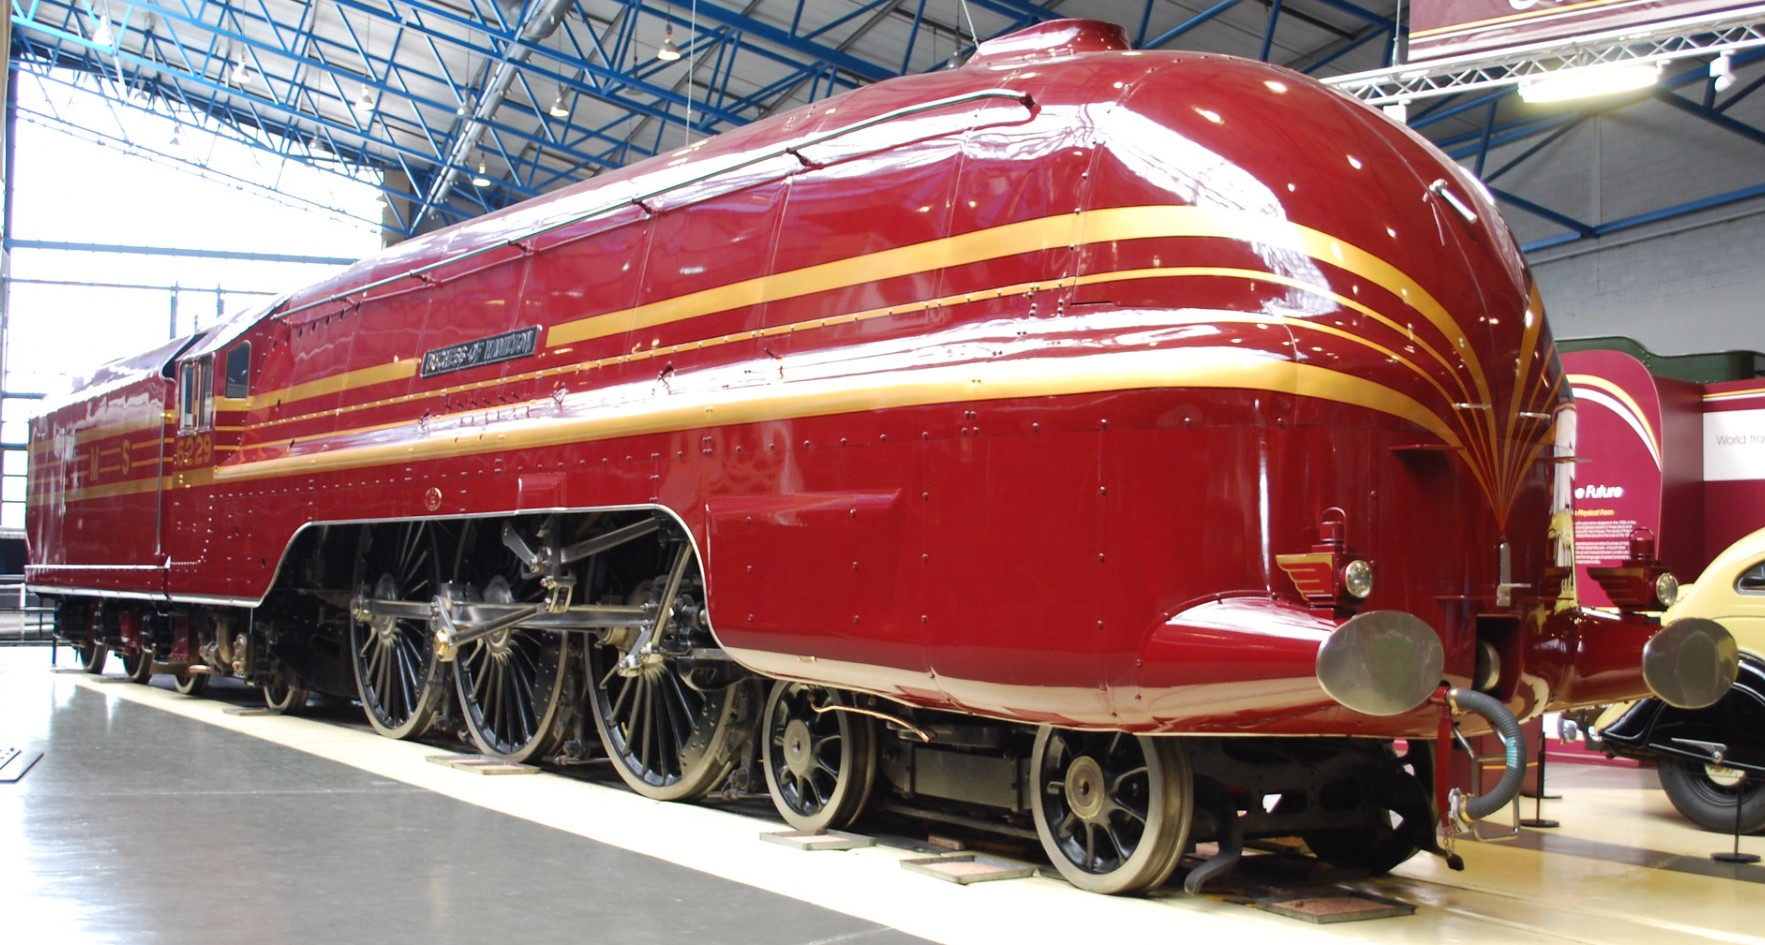 6229 Duchess of Hamilton at the National Railway Museum, York in September 2010. ©Hugh Llewelyn